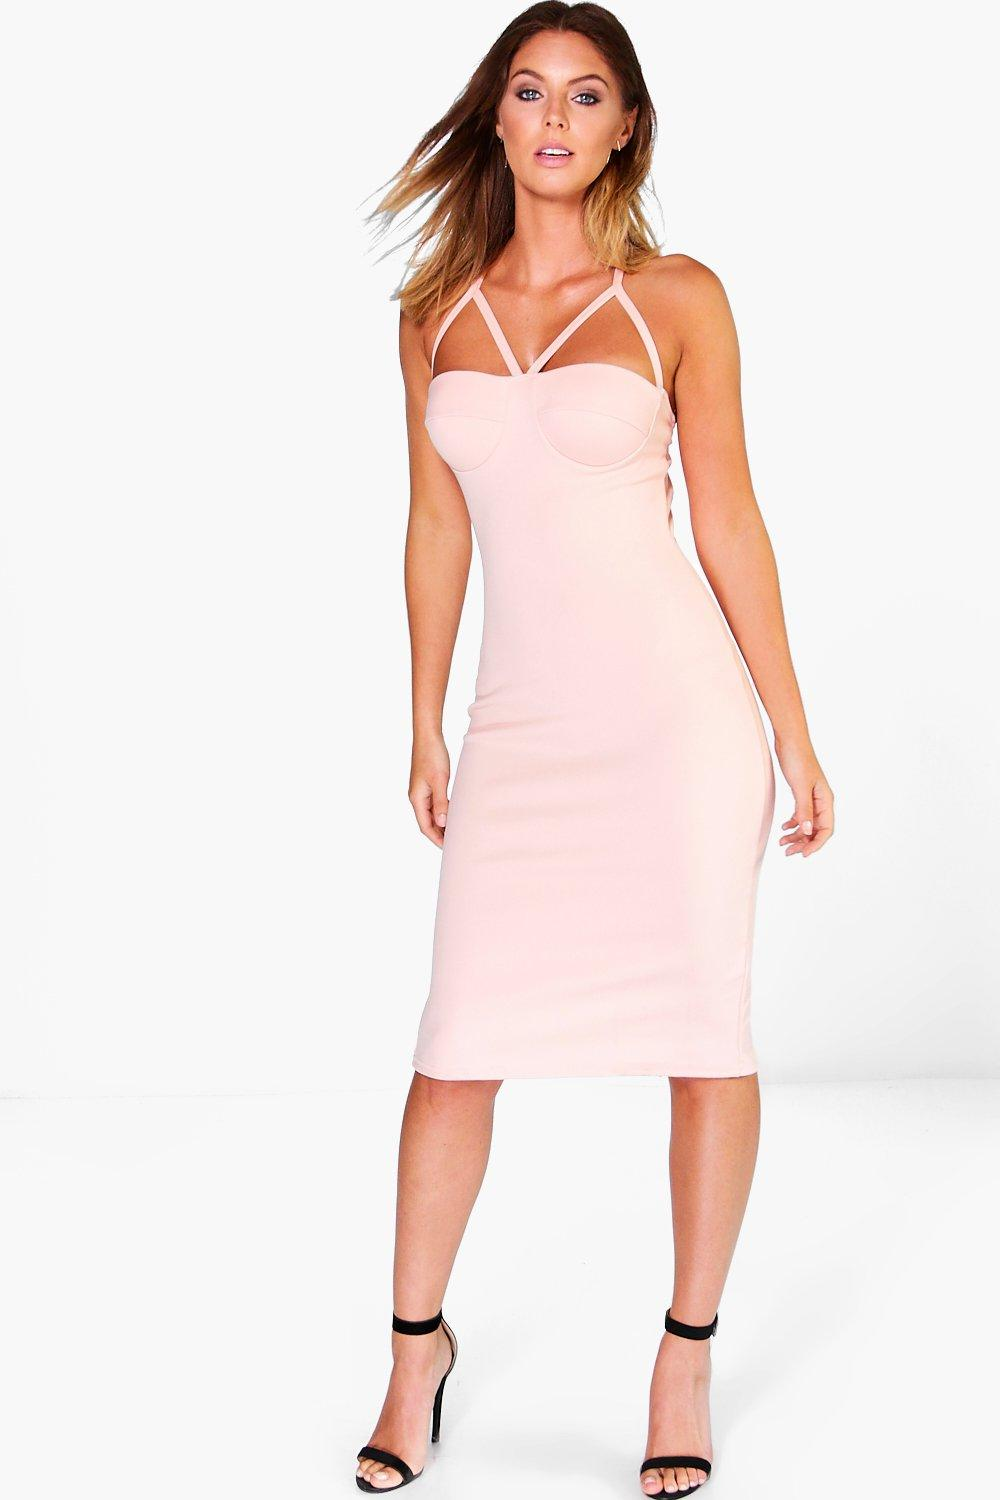 Melody Strappy Bodycon Dress